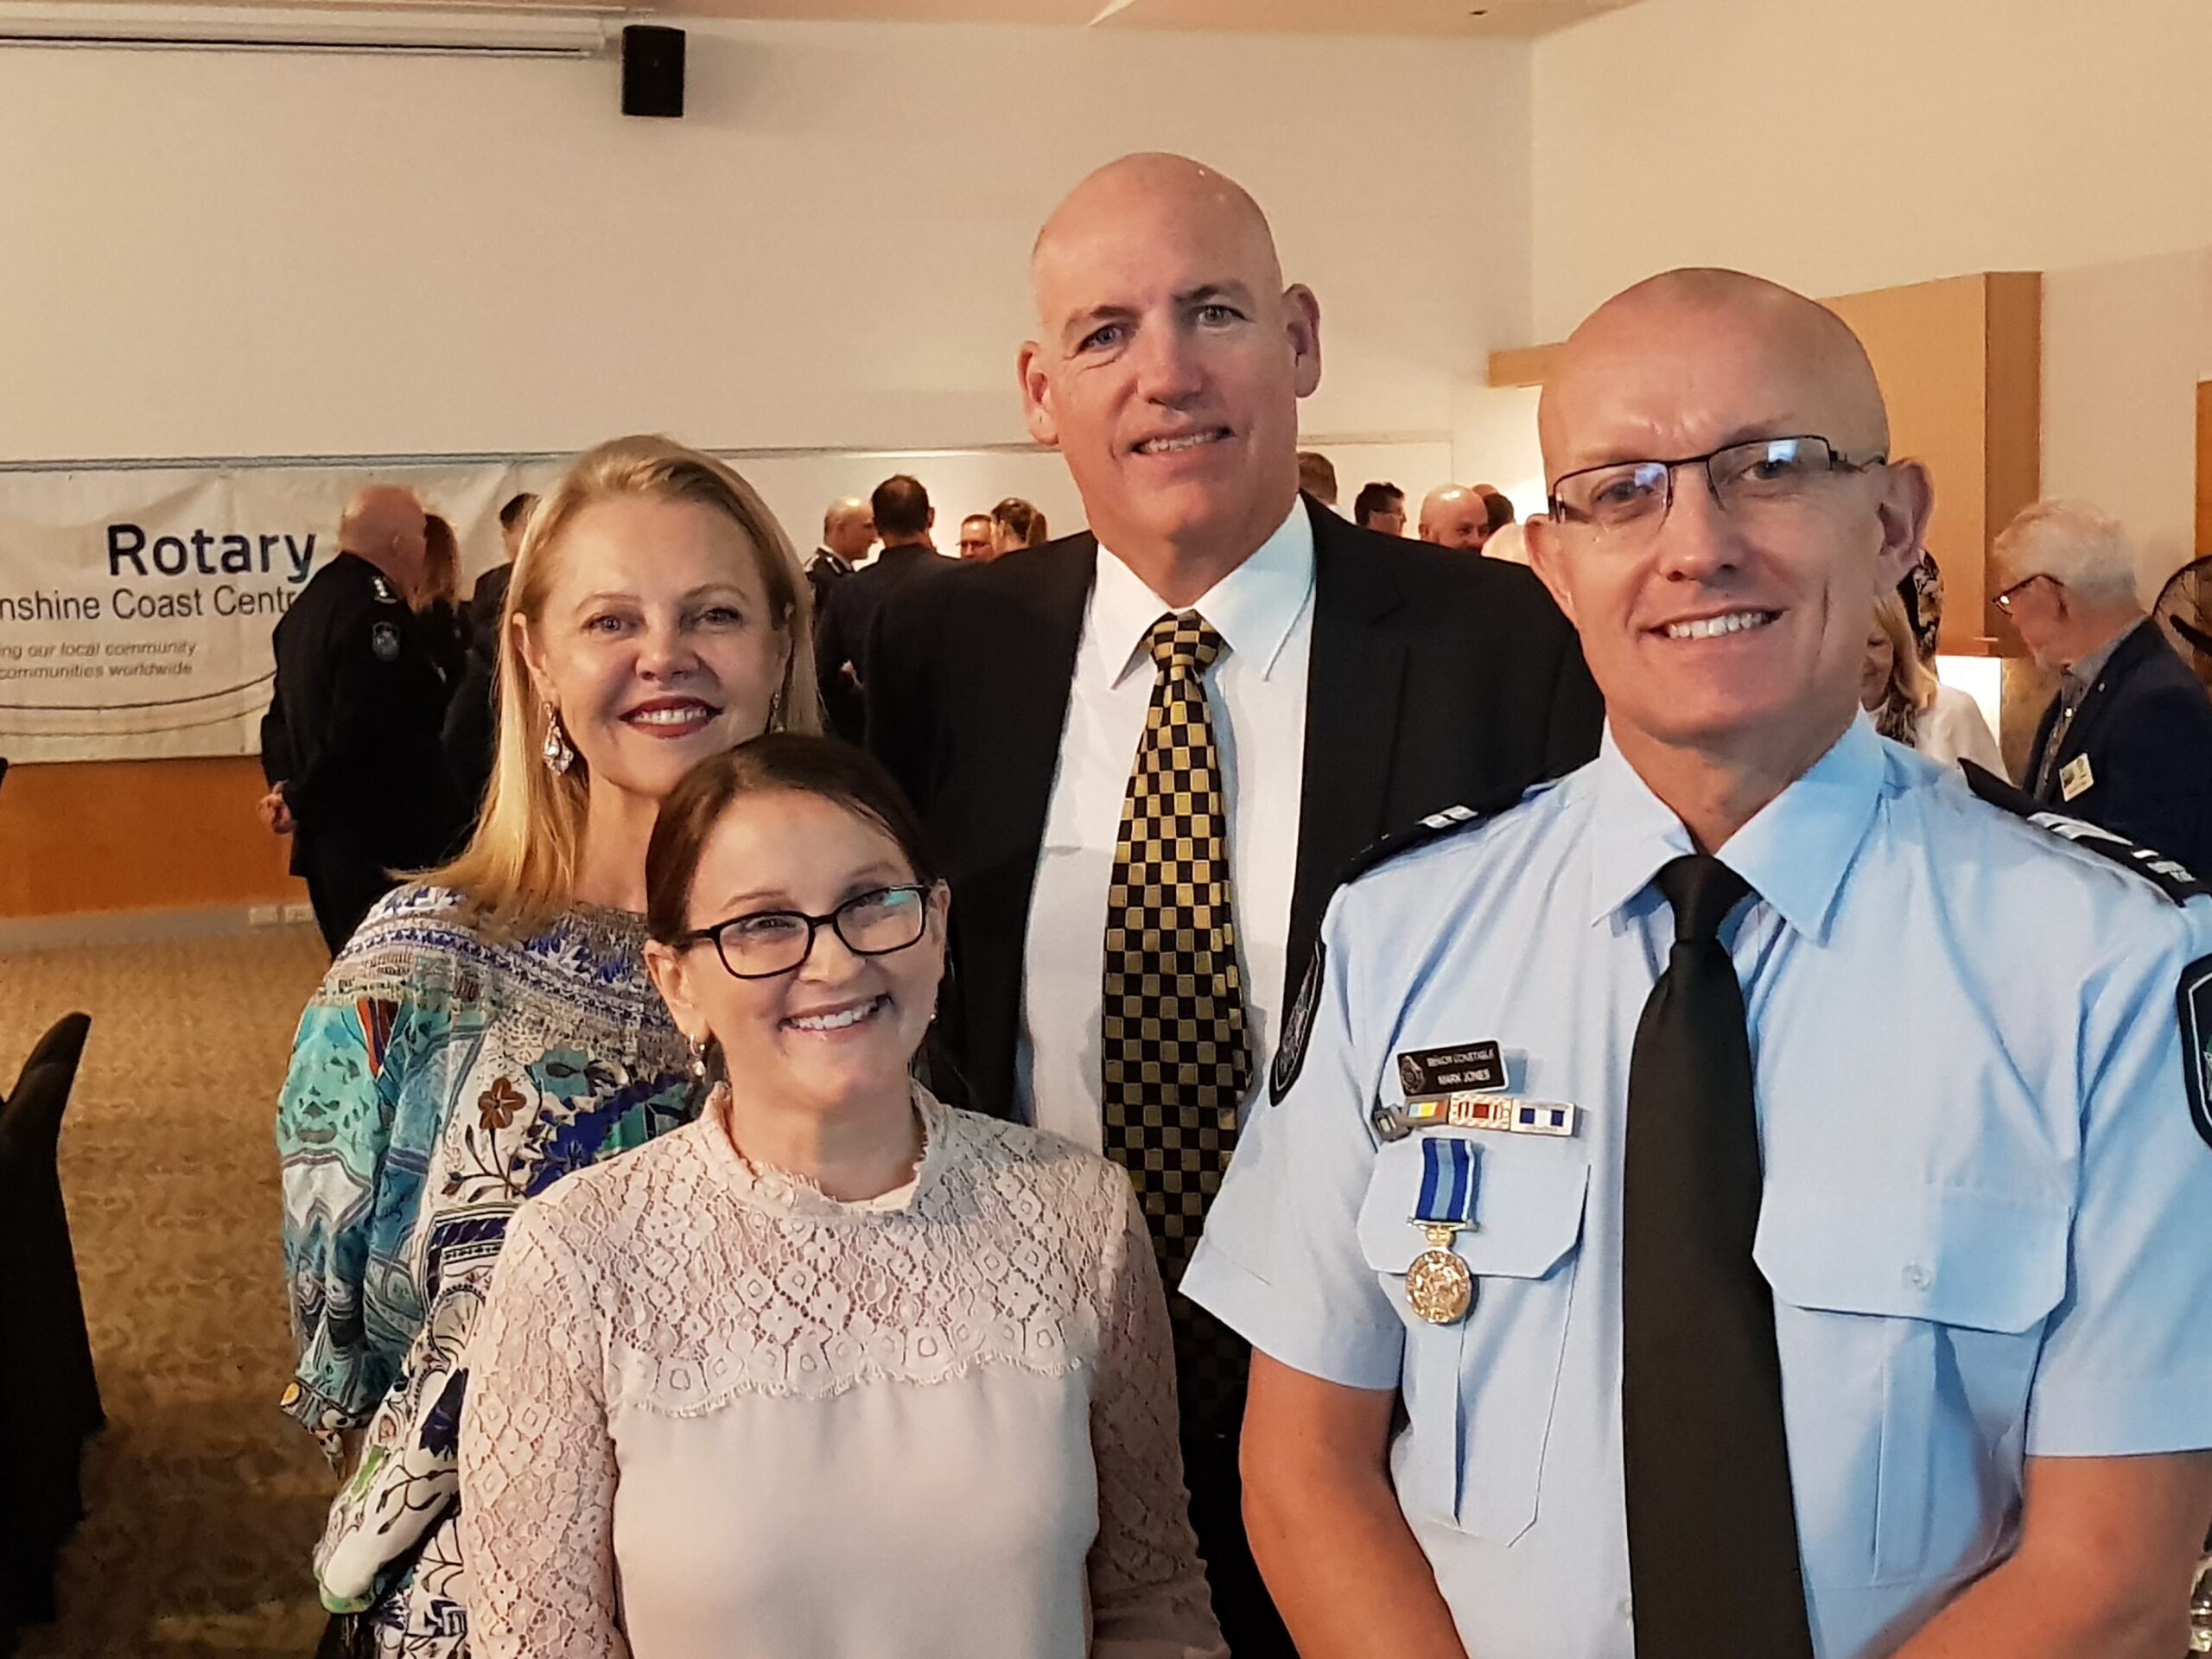 QPS Police of the Year awards